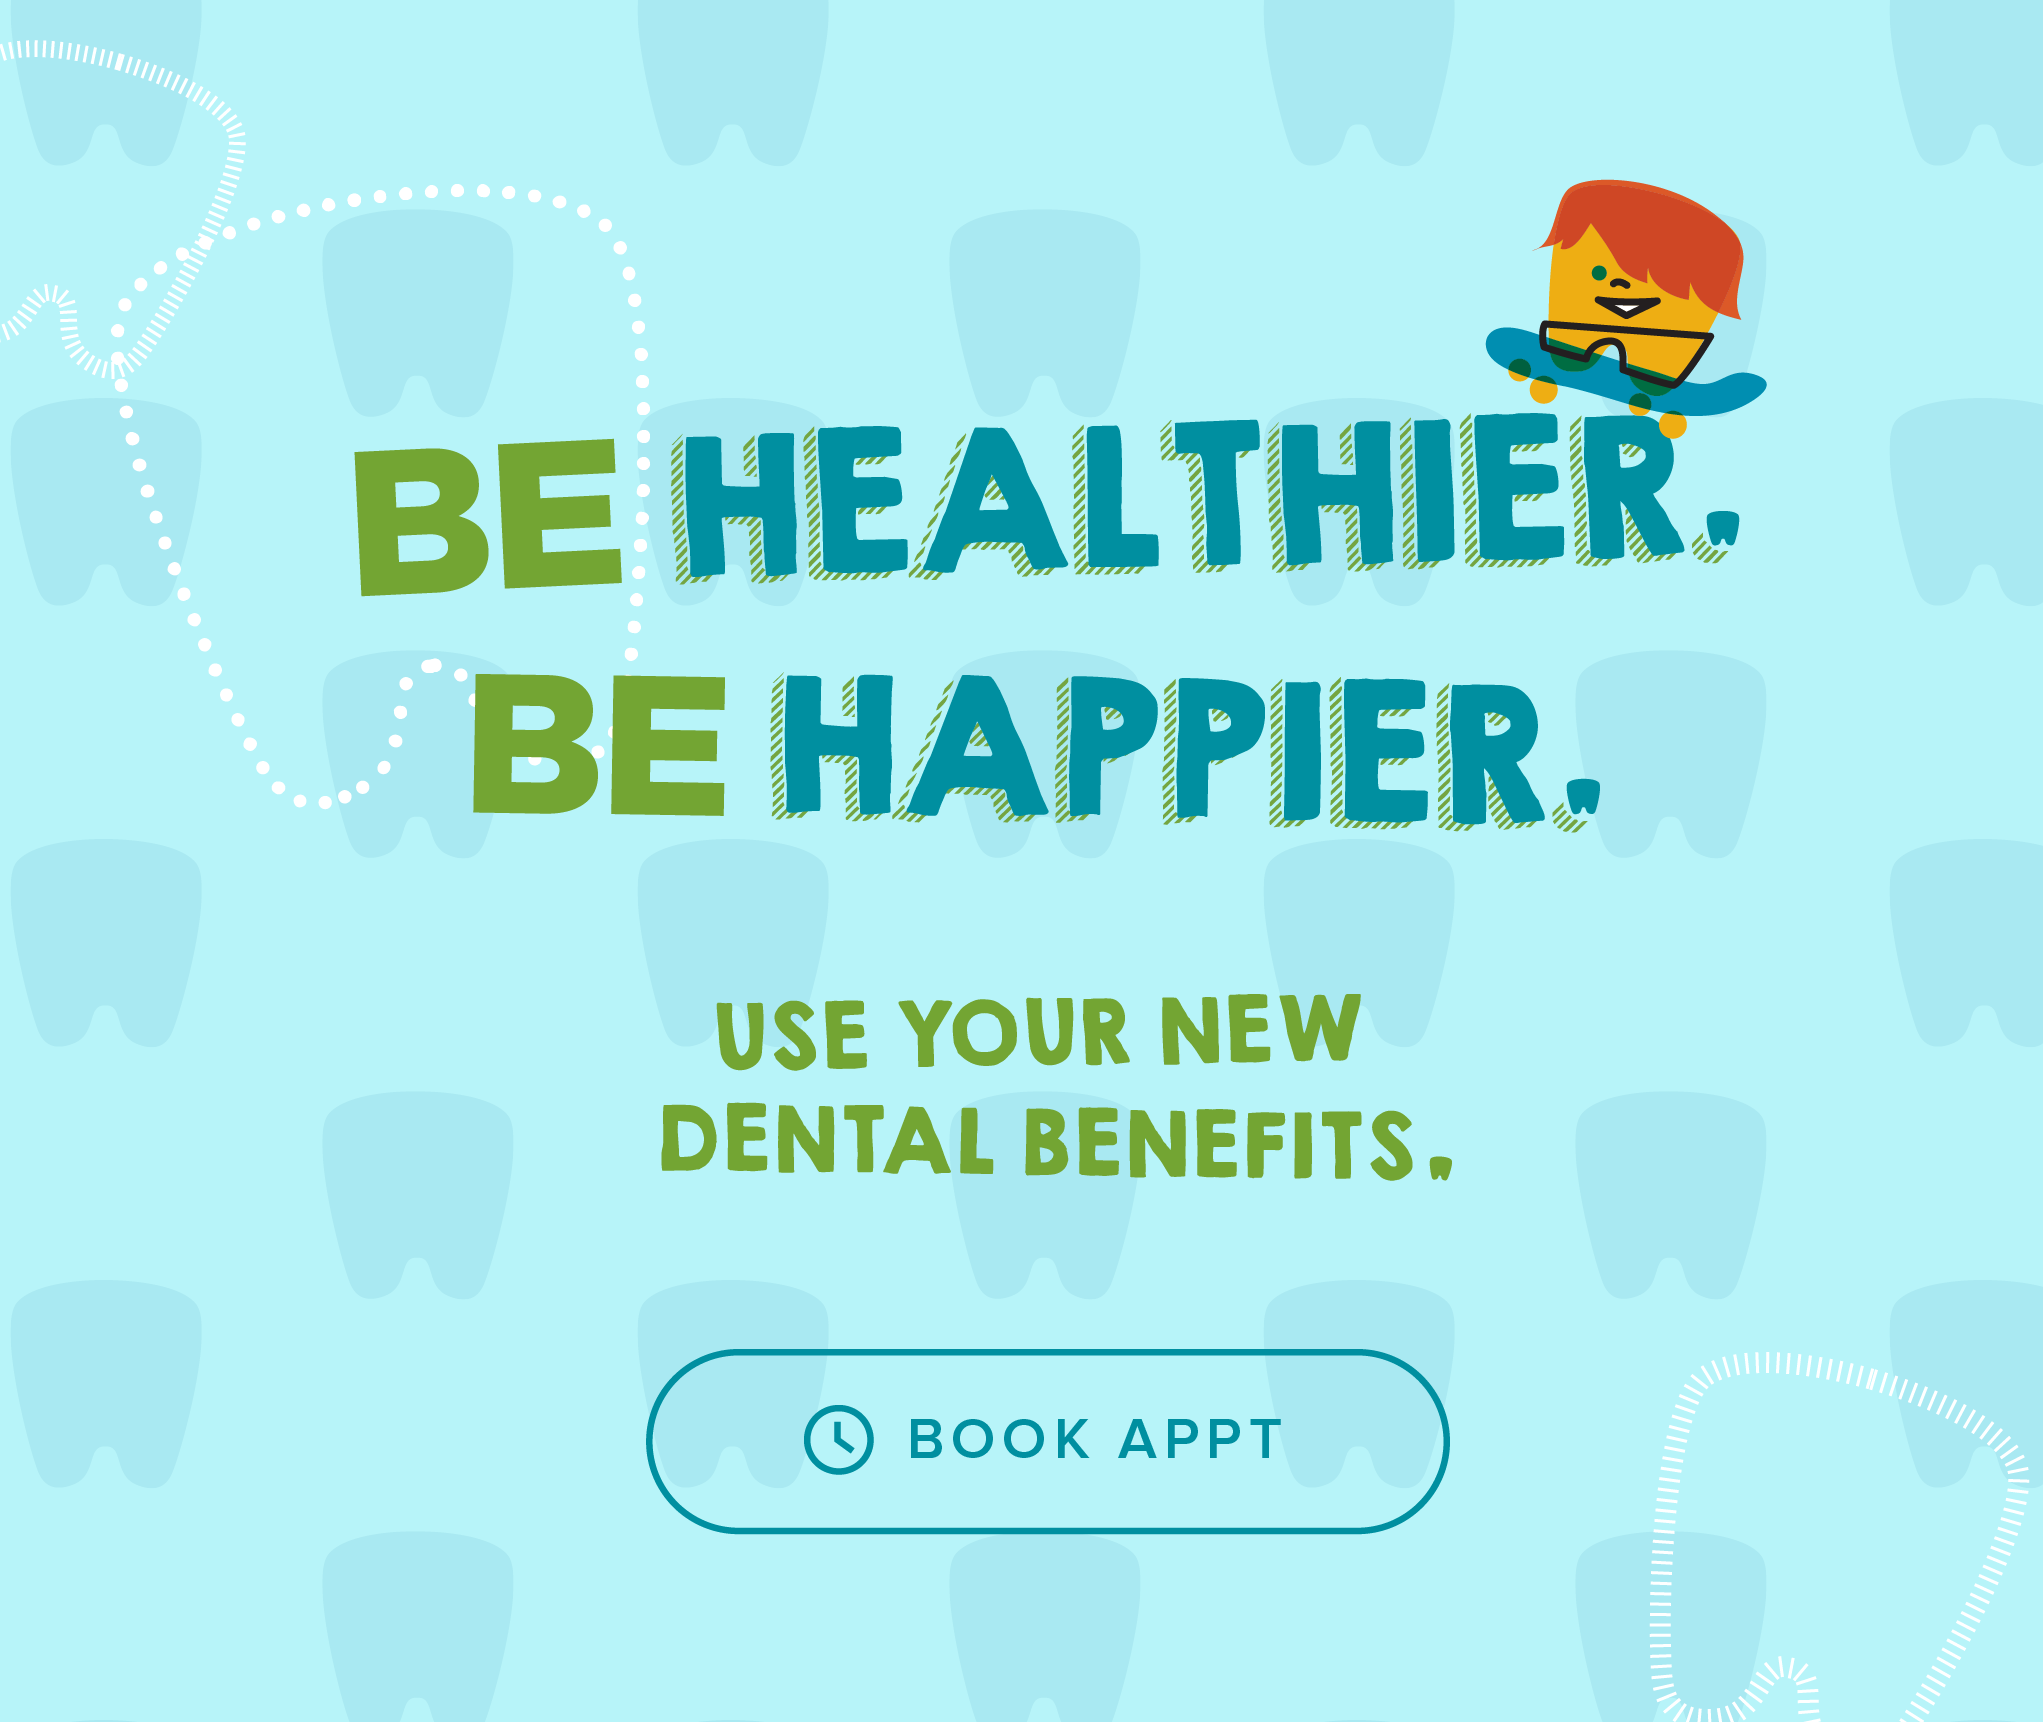 Be Healthier. Be Happier. Use your new dental benefits. - Every Kid's Dentist & Orthodontics